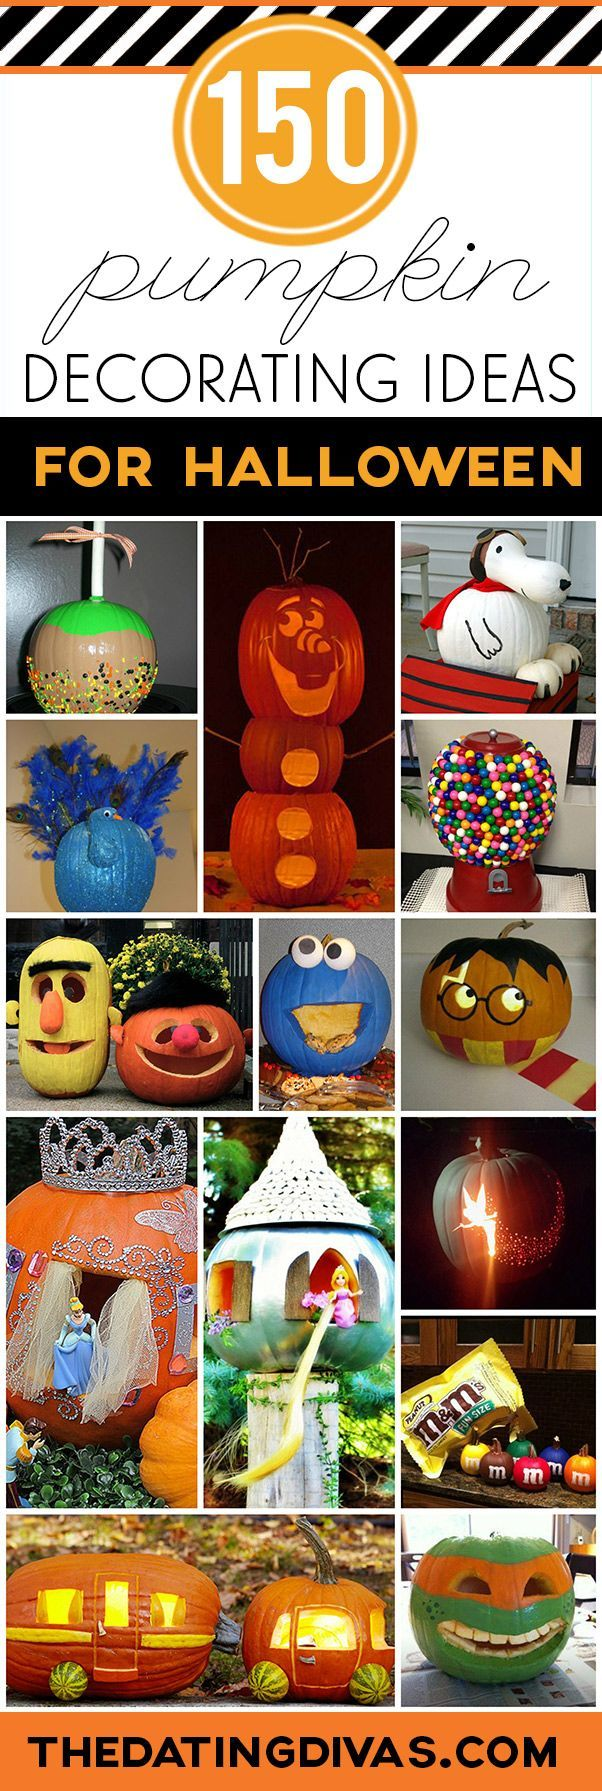 A huge collection of the BEST creative pumpkins for Halloween! Including 60 creative pumpkin carving ideas AND 90 creative no-carve pumpkin ideas.